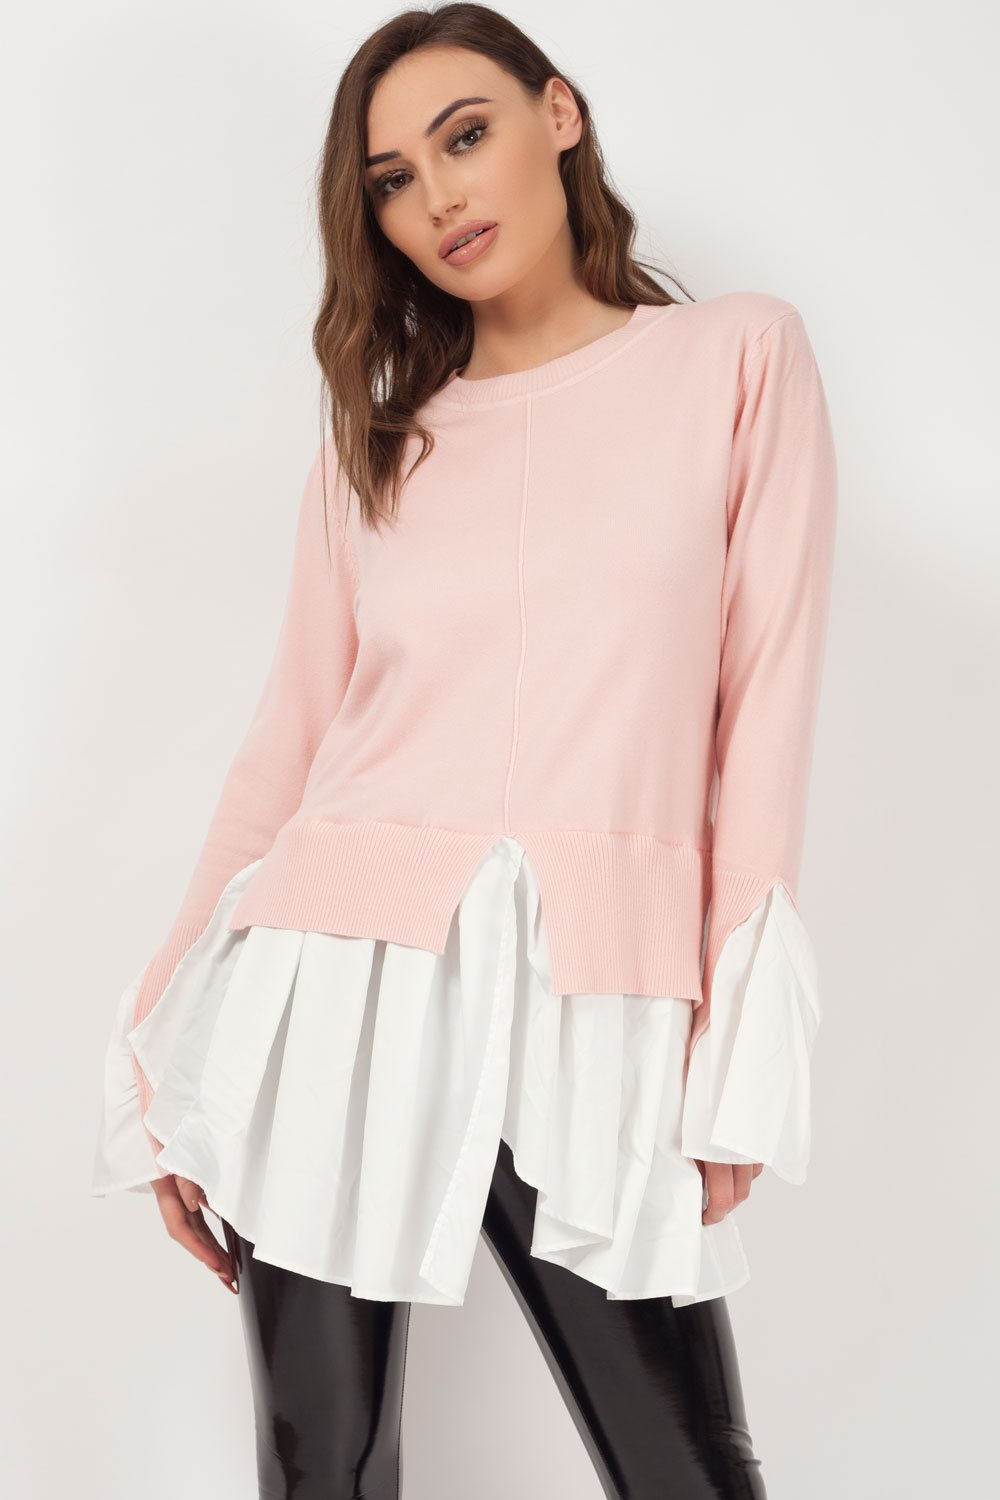 women's mock layer shirt jumper